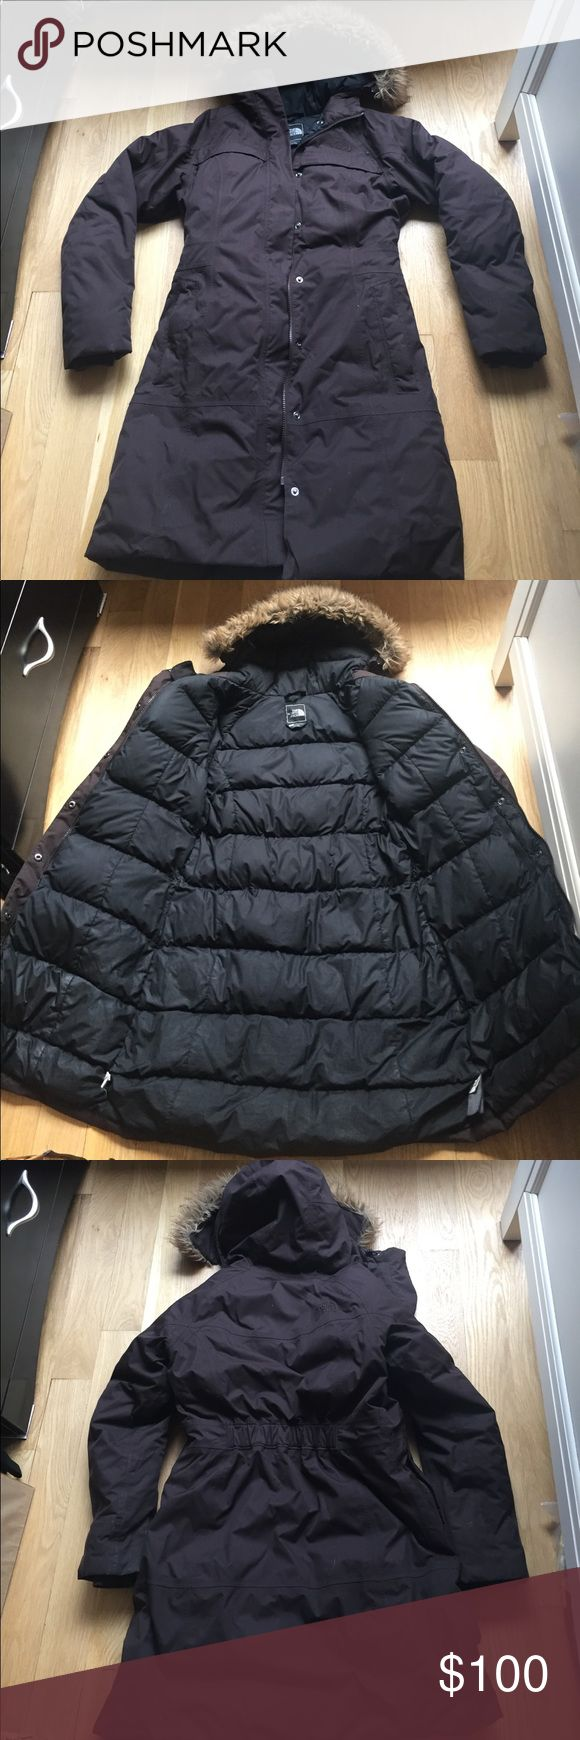 North Face Women's Parka Jacket - Mocha Brown North Face Women's Parka - mocha. Long parka, faux fur hood, four pockets on front, one internal pocket, good condition! Perfect for very cold winters :) North Face Jackets & Coats Puffers